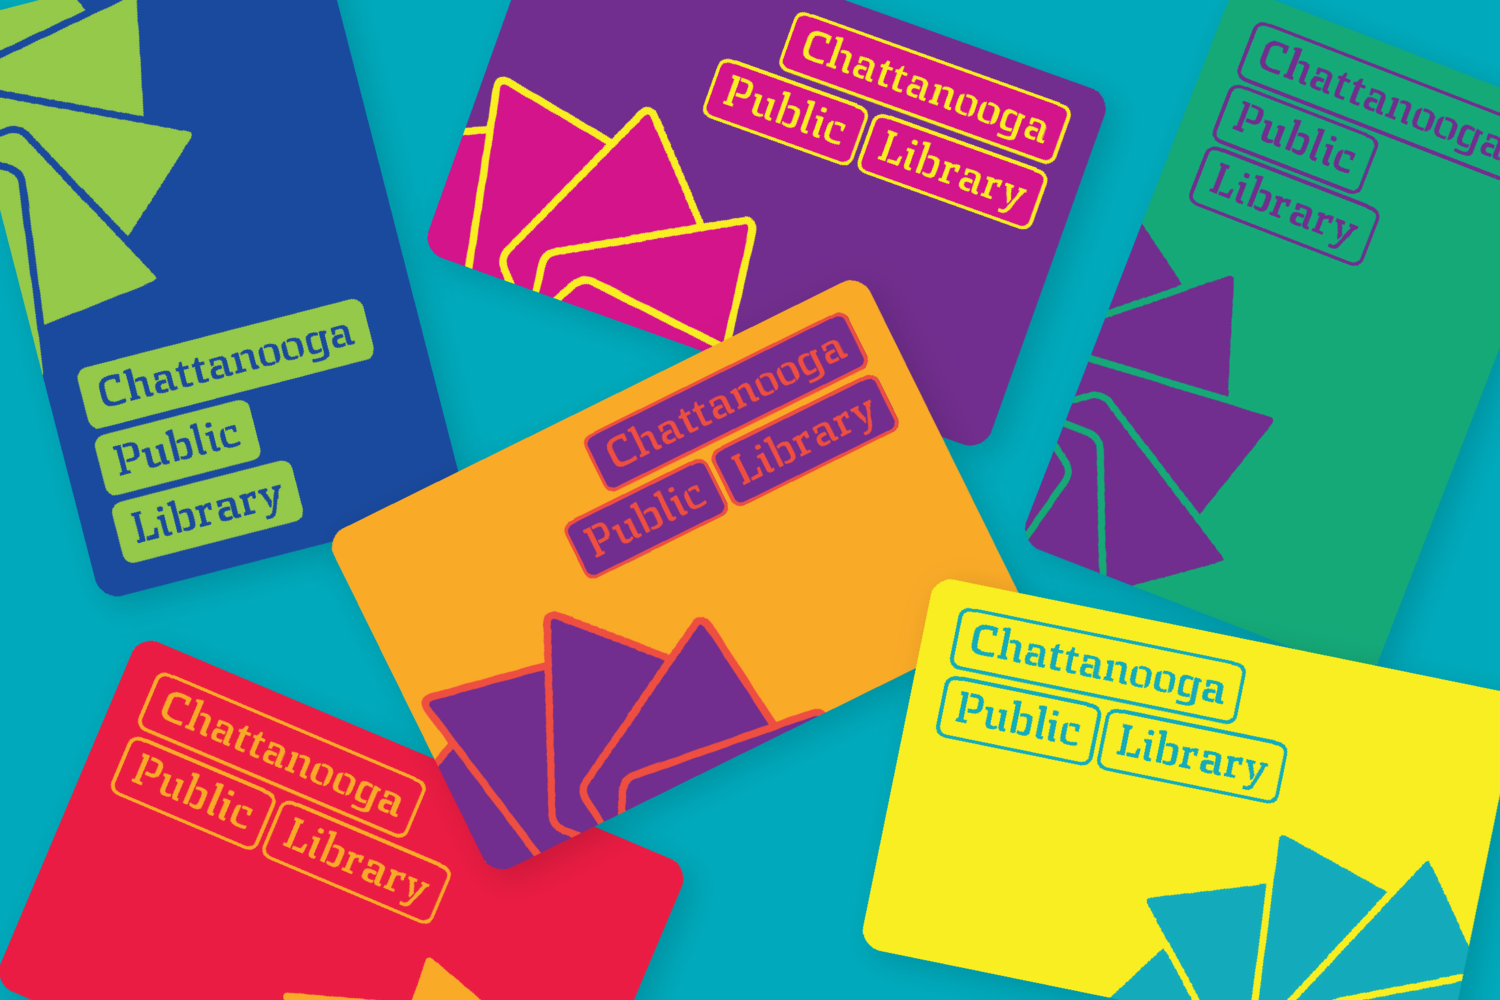 Chattanooga Public Library Brand Identity Guidelines